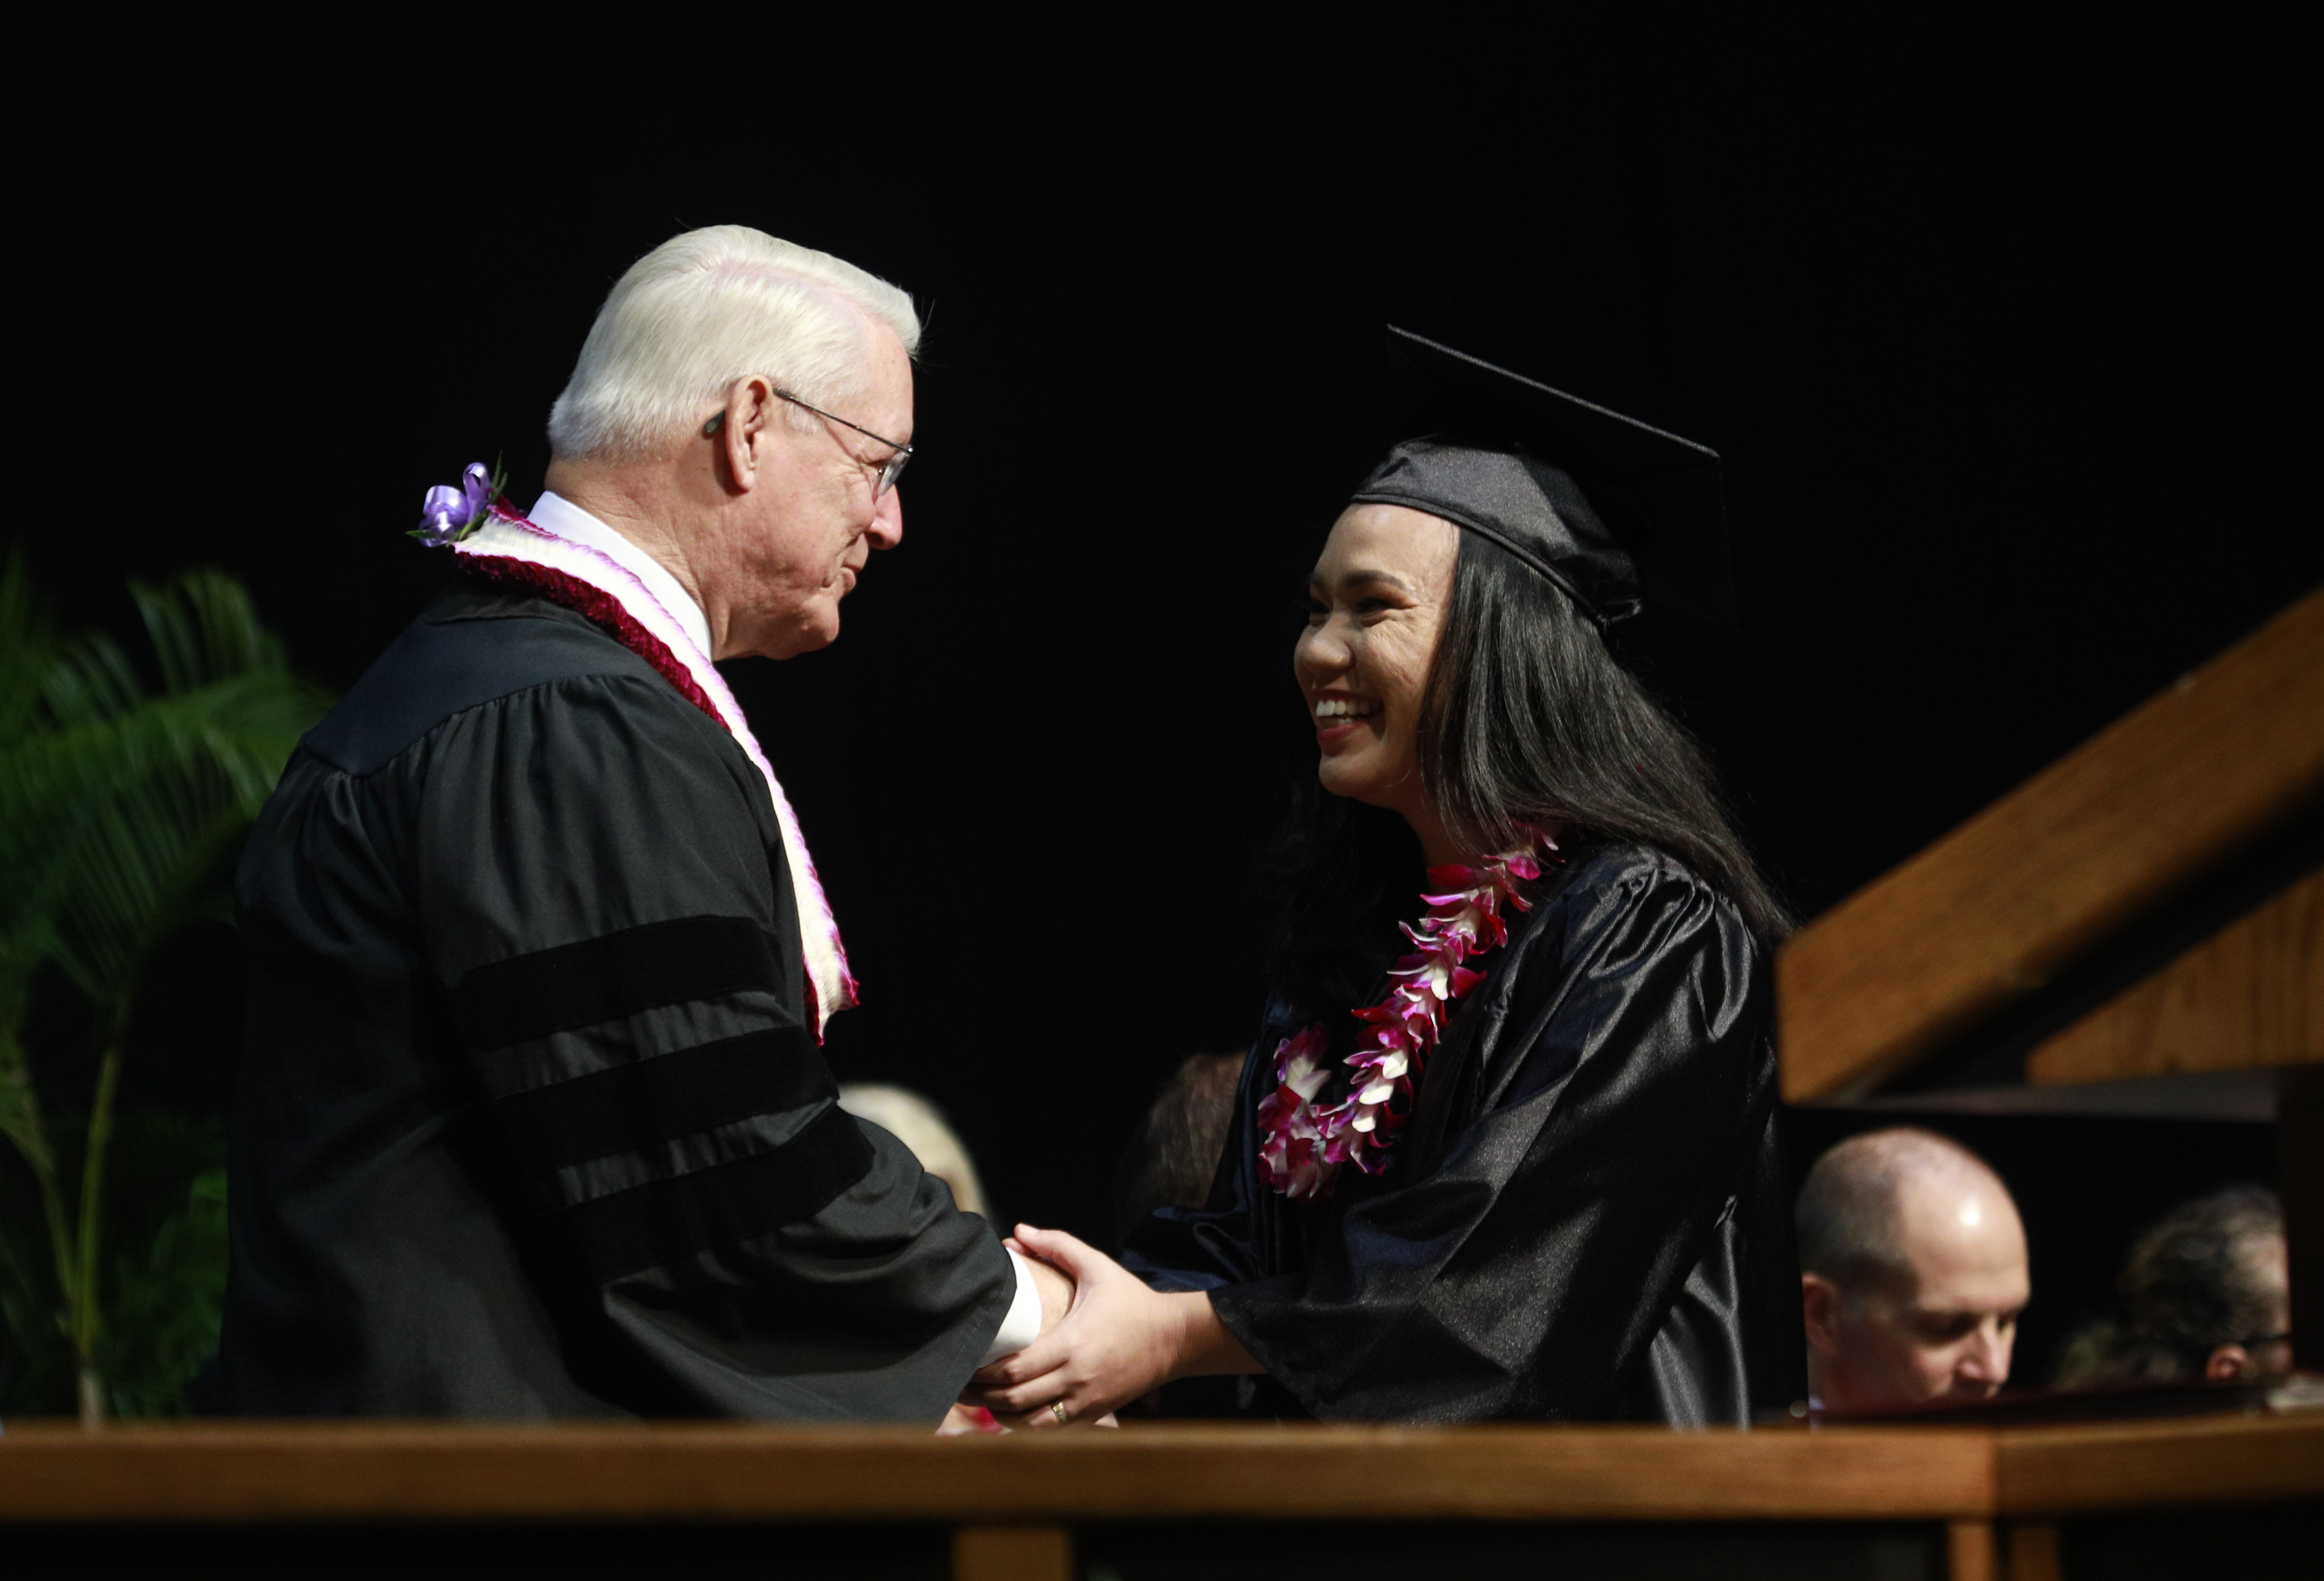 Bishop Dean M. Davies of the Presiding Bishopric shakes hands with a graduate after BYU-Hawaii graduation on June 30.